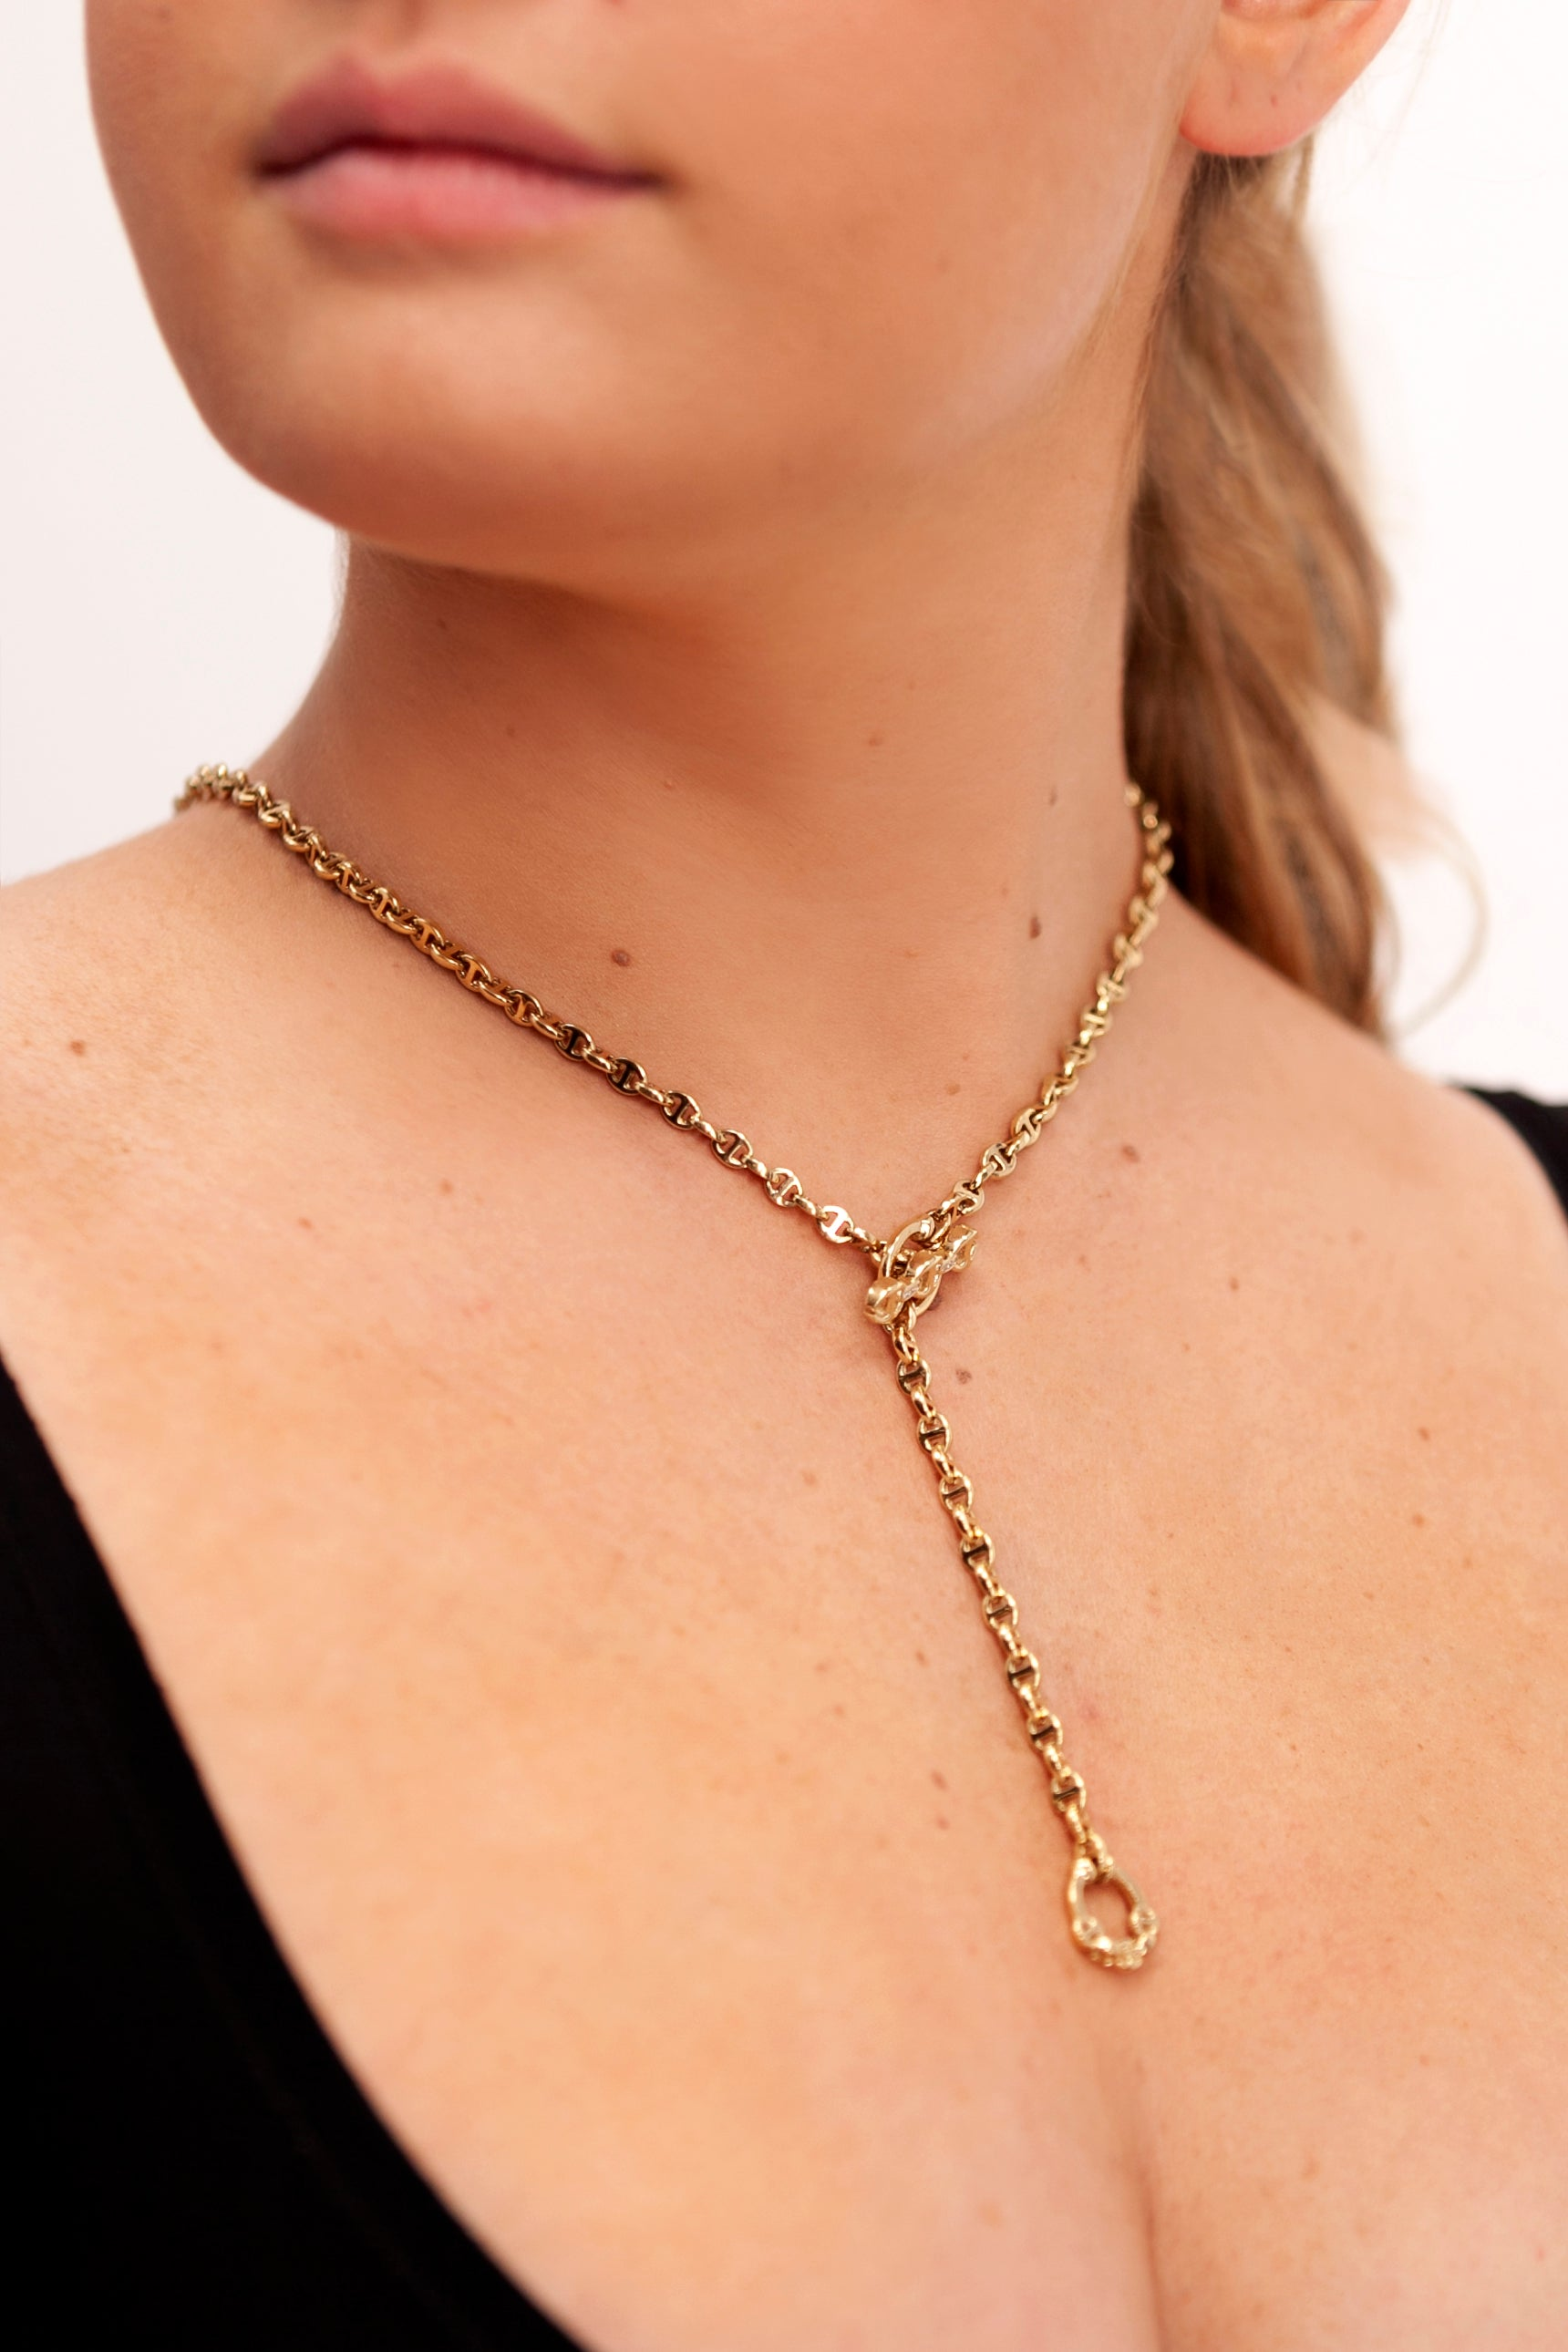 Image of Hoorsenbuhs 3mm Open Link Necklace on model